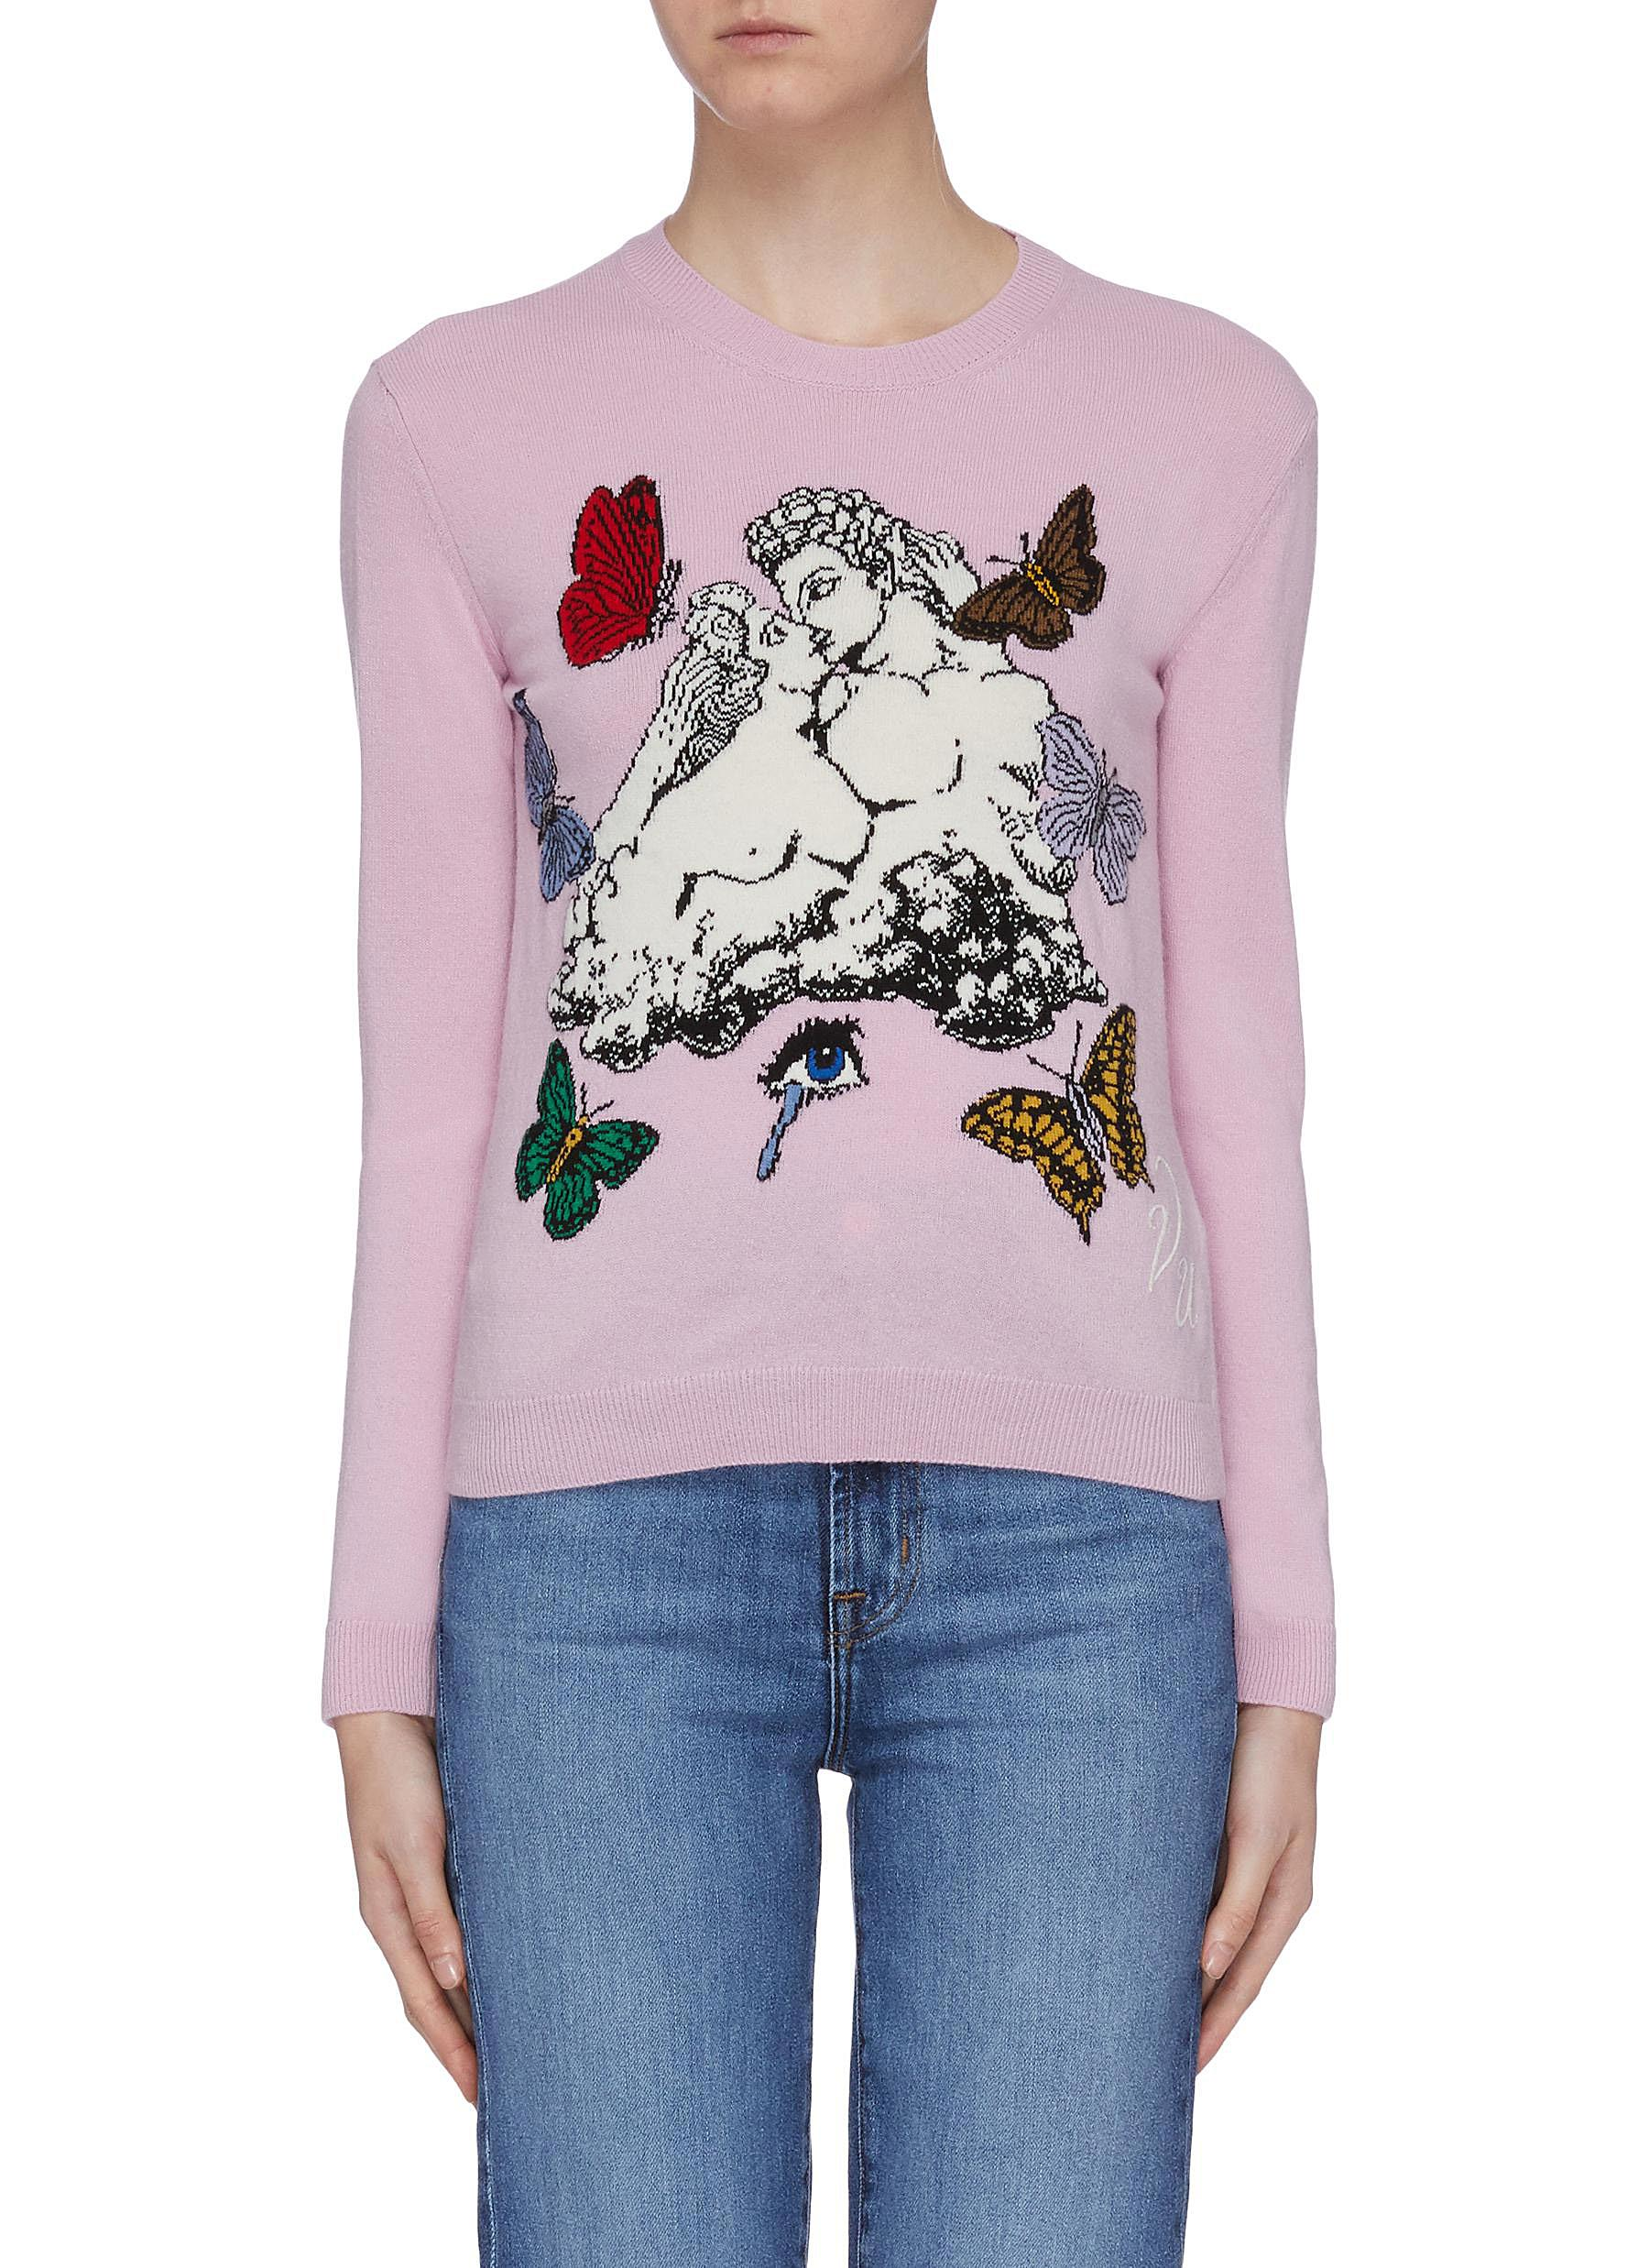 Lovers intarsia sweater by Valentino